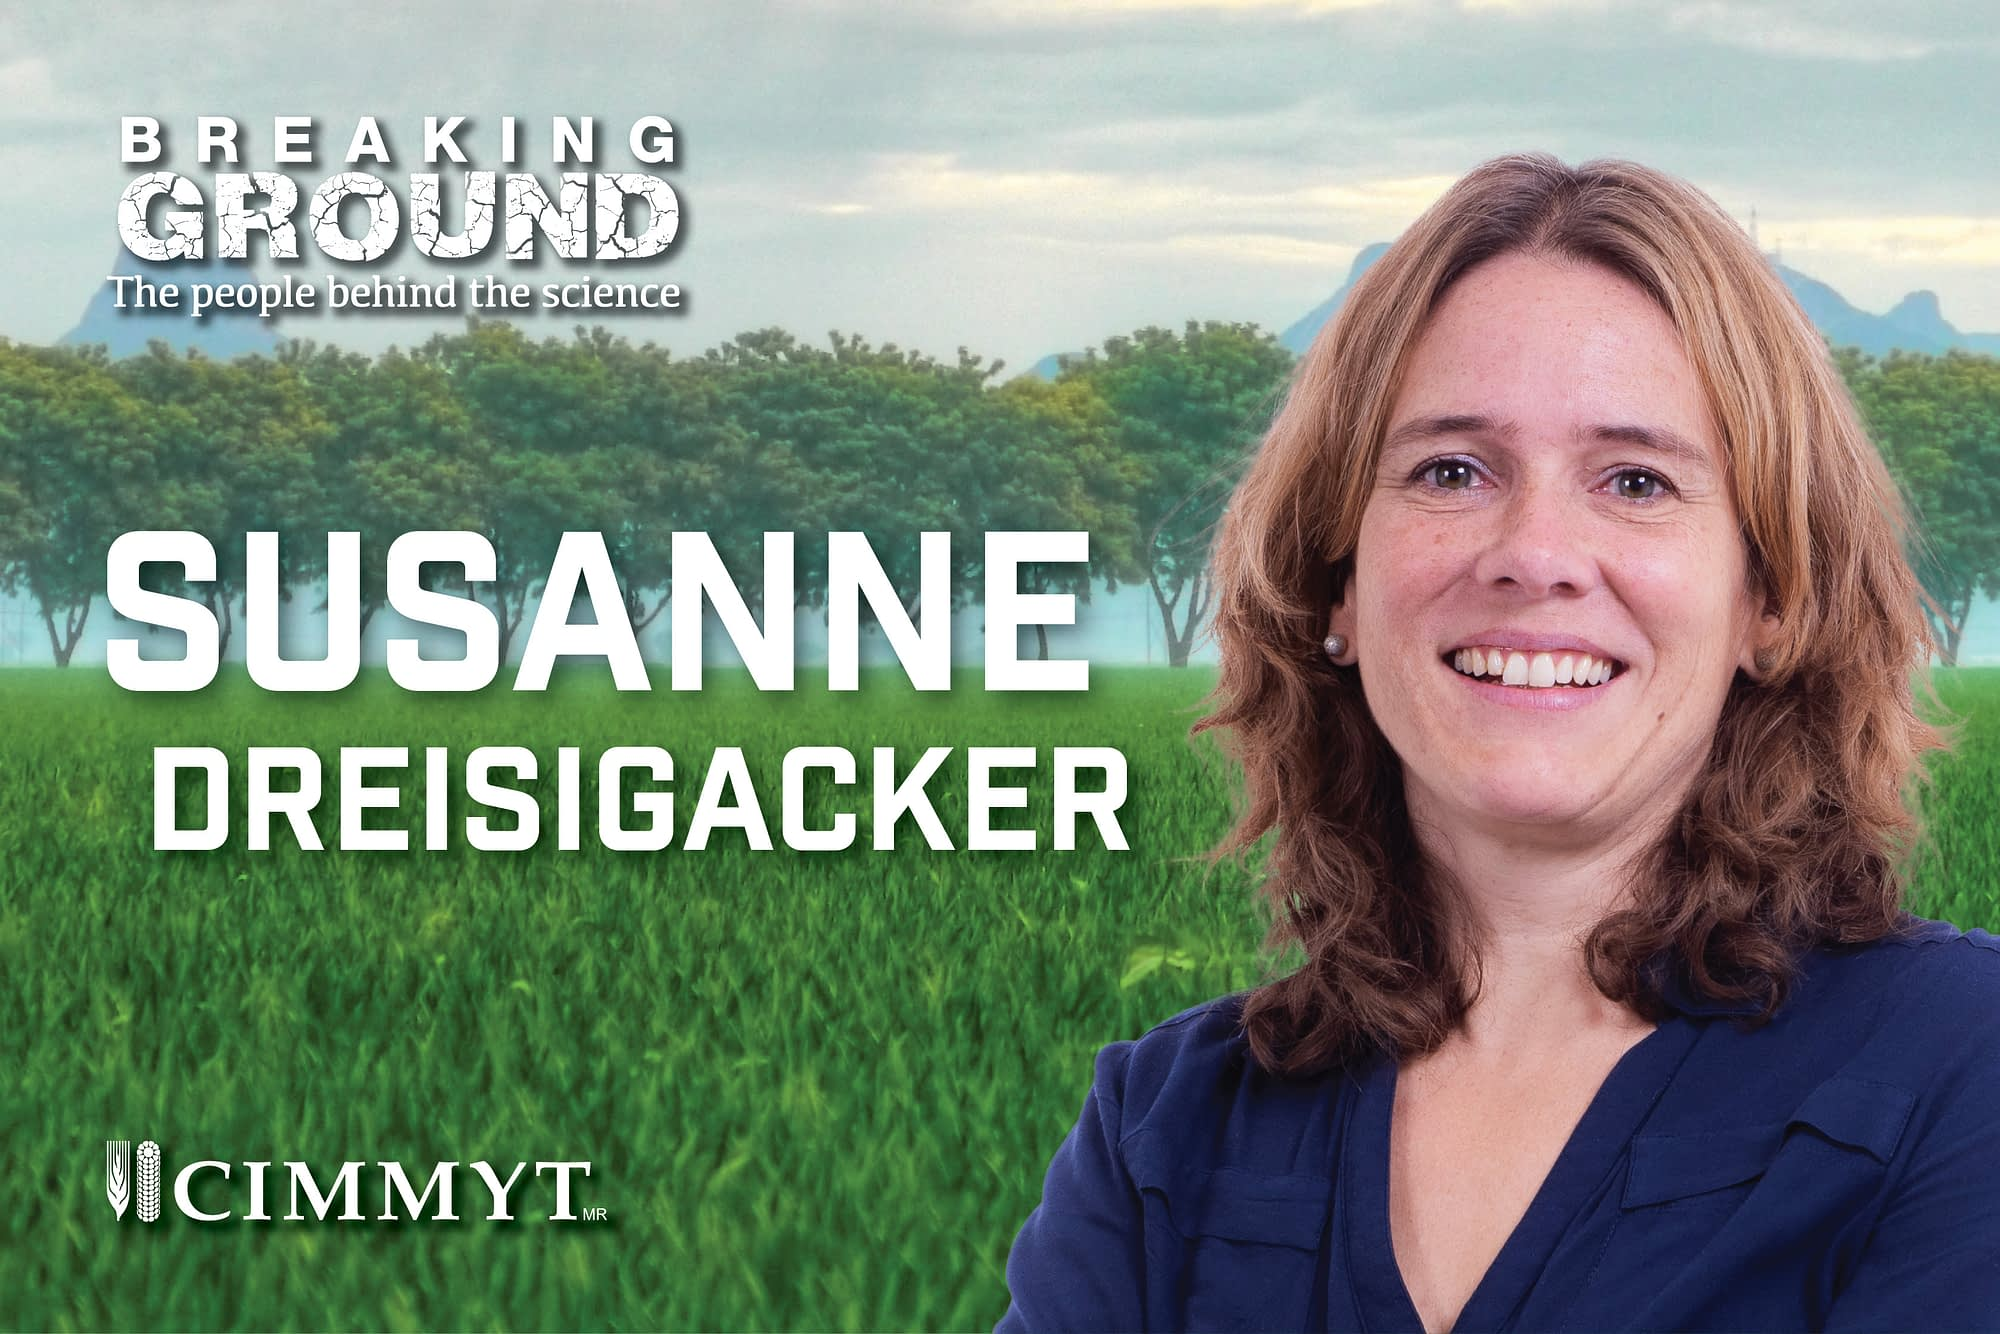 Breaking Ground: Susan Dreisigacker